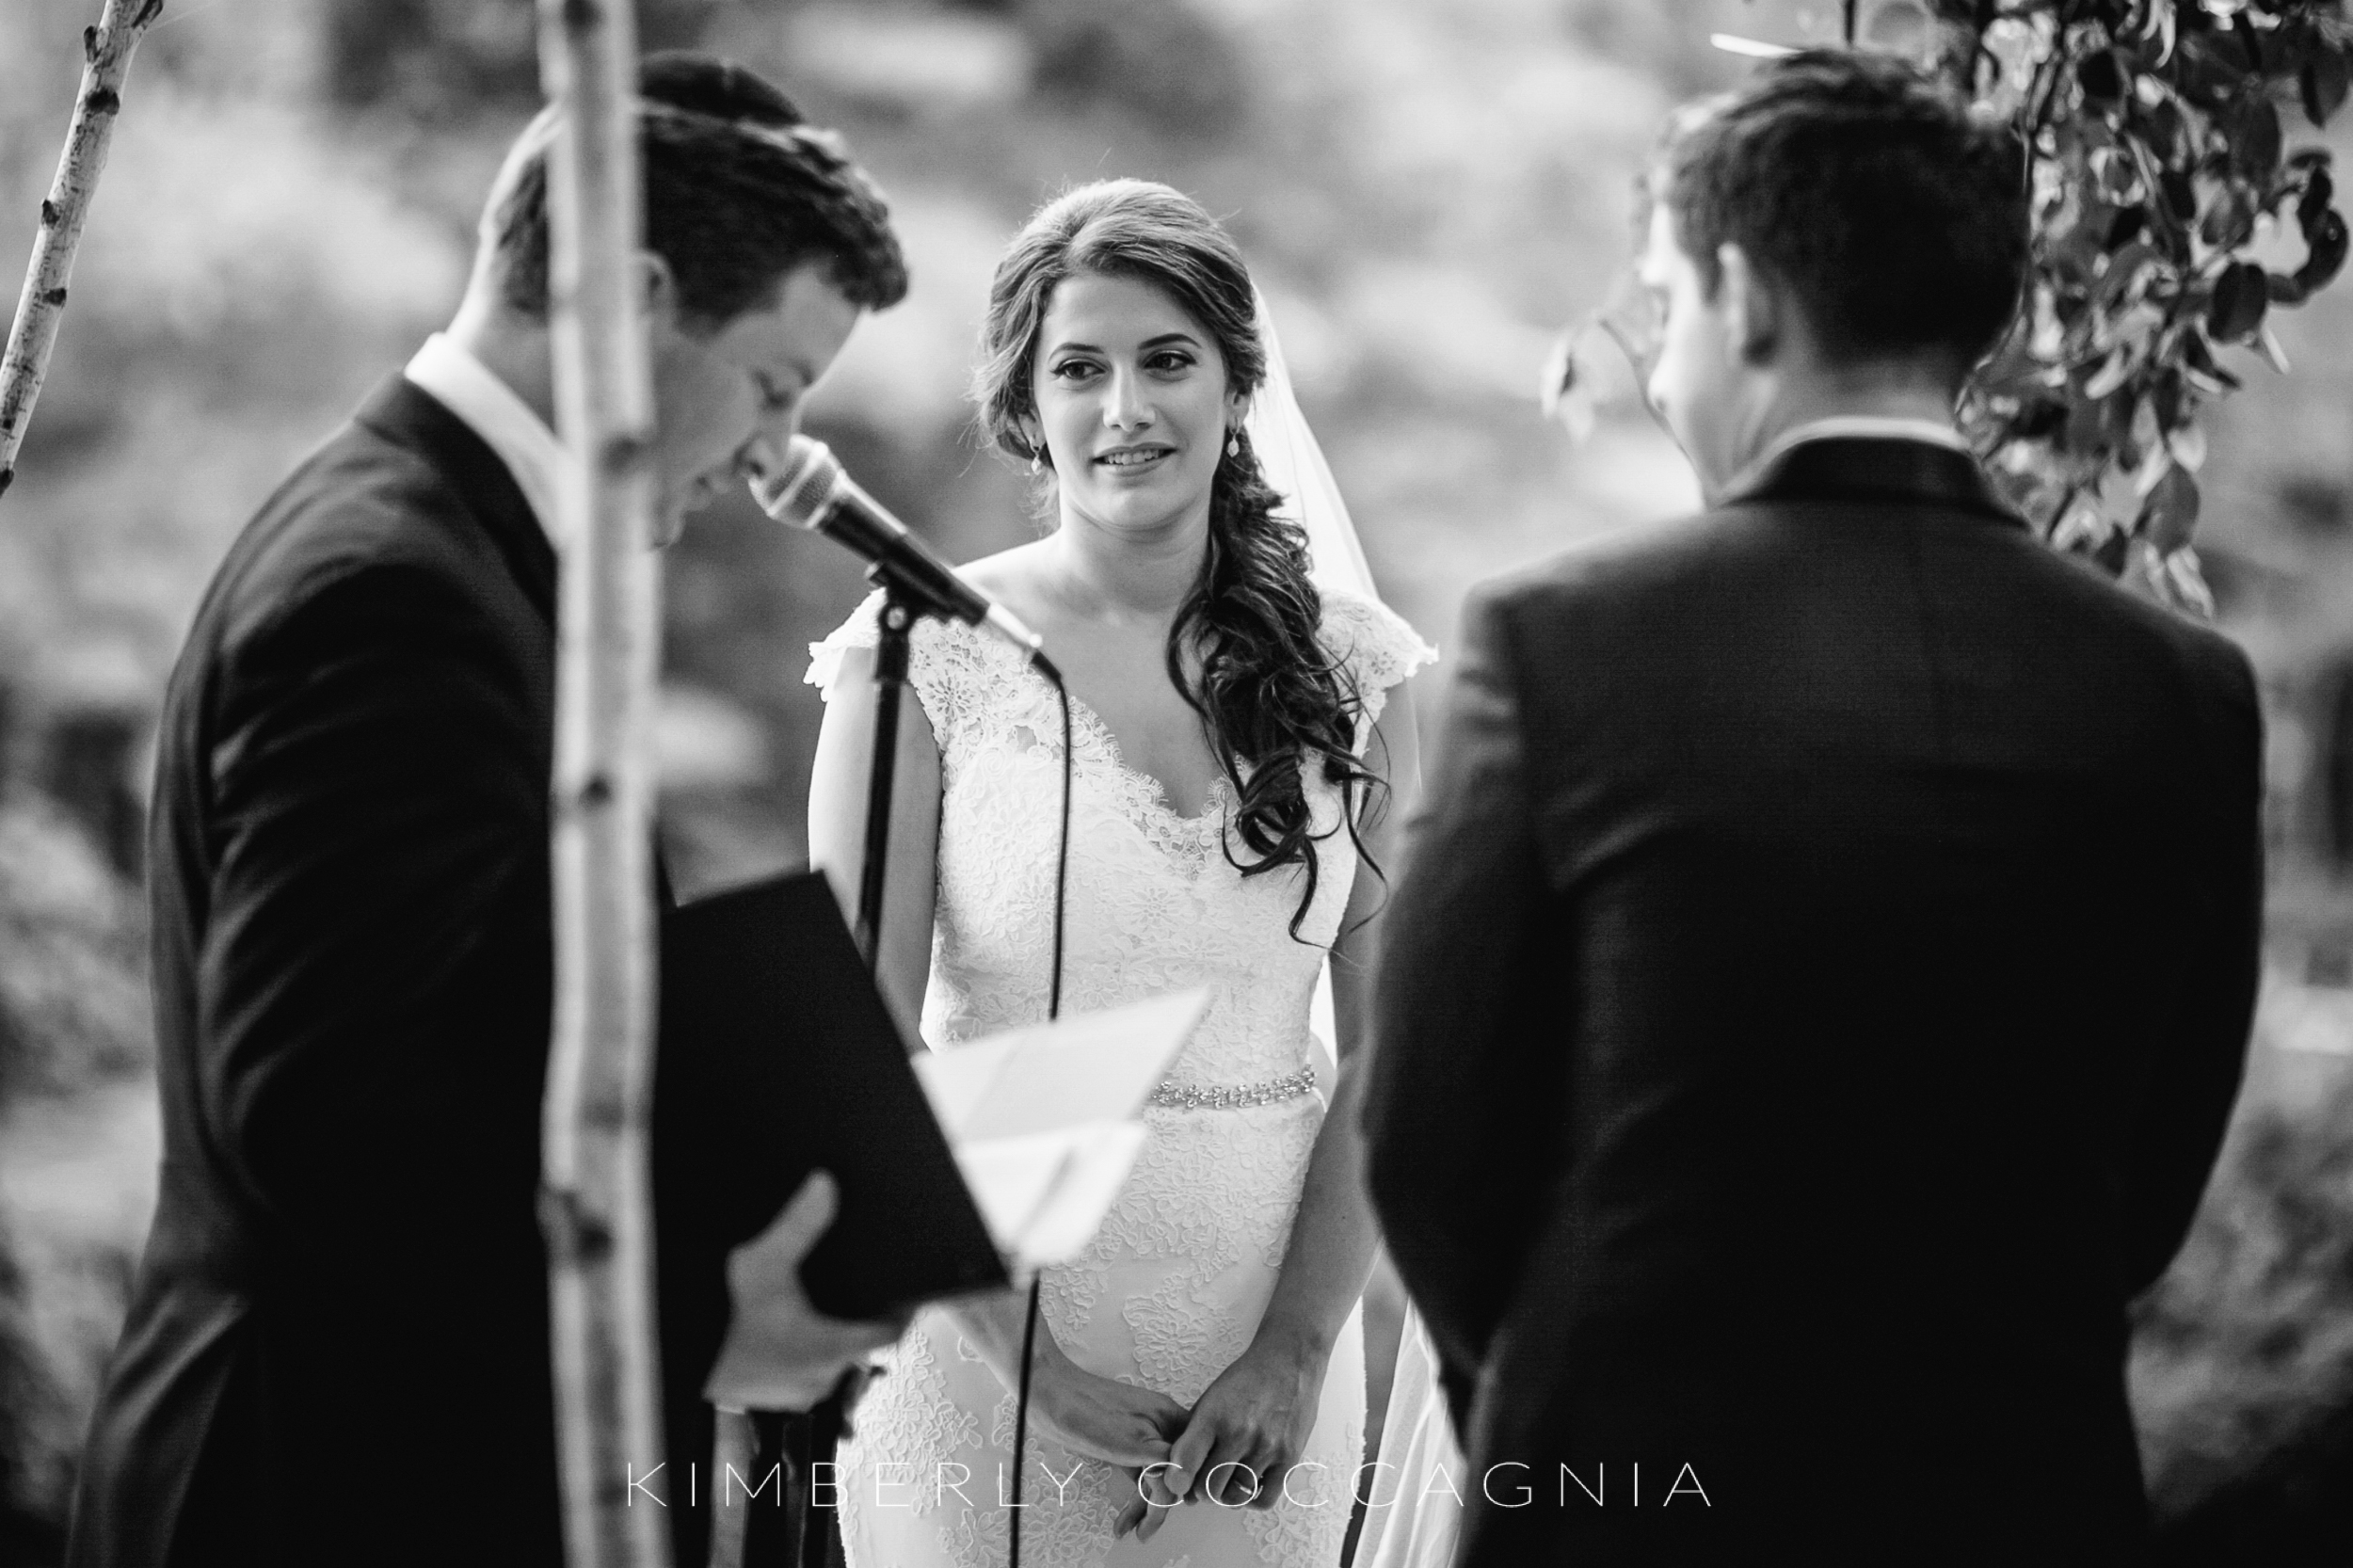 Kimberly+Coccagnia+Hudson+Valley+Wedding+Photographer-68.JPG